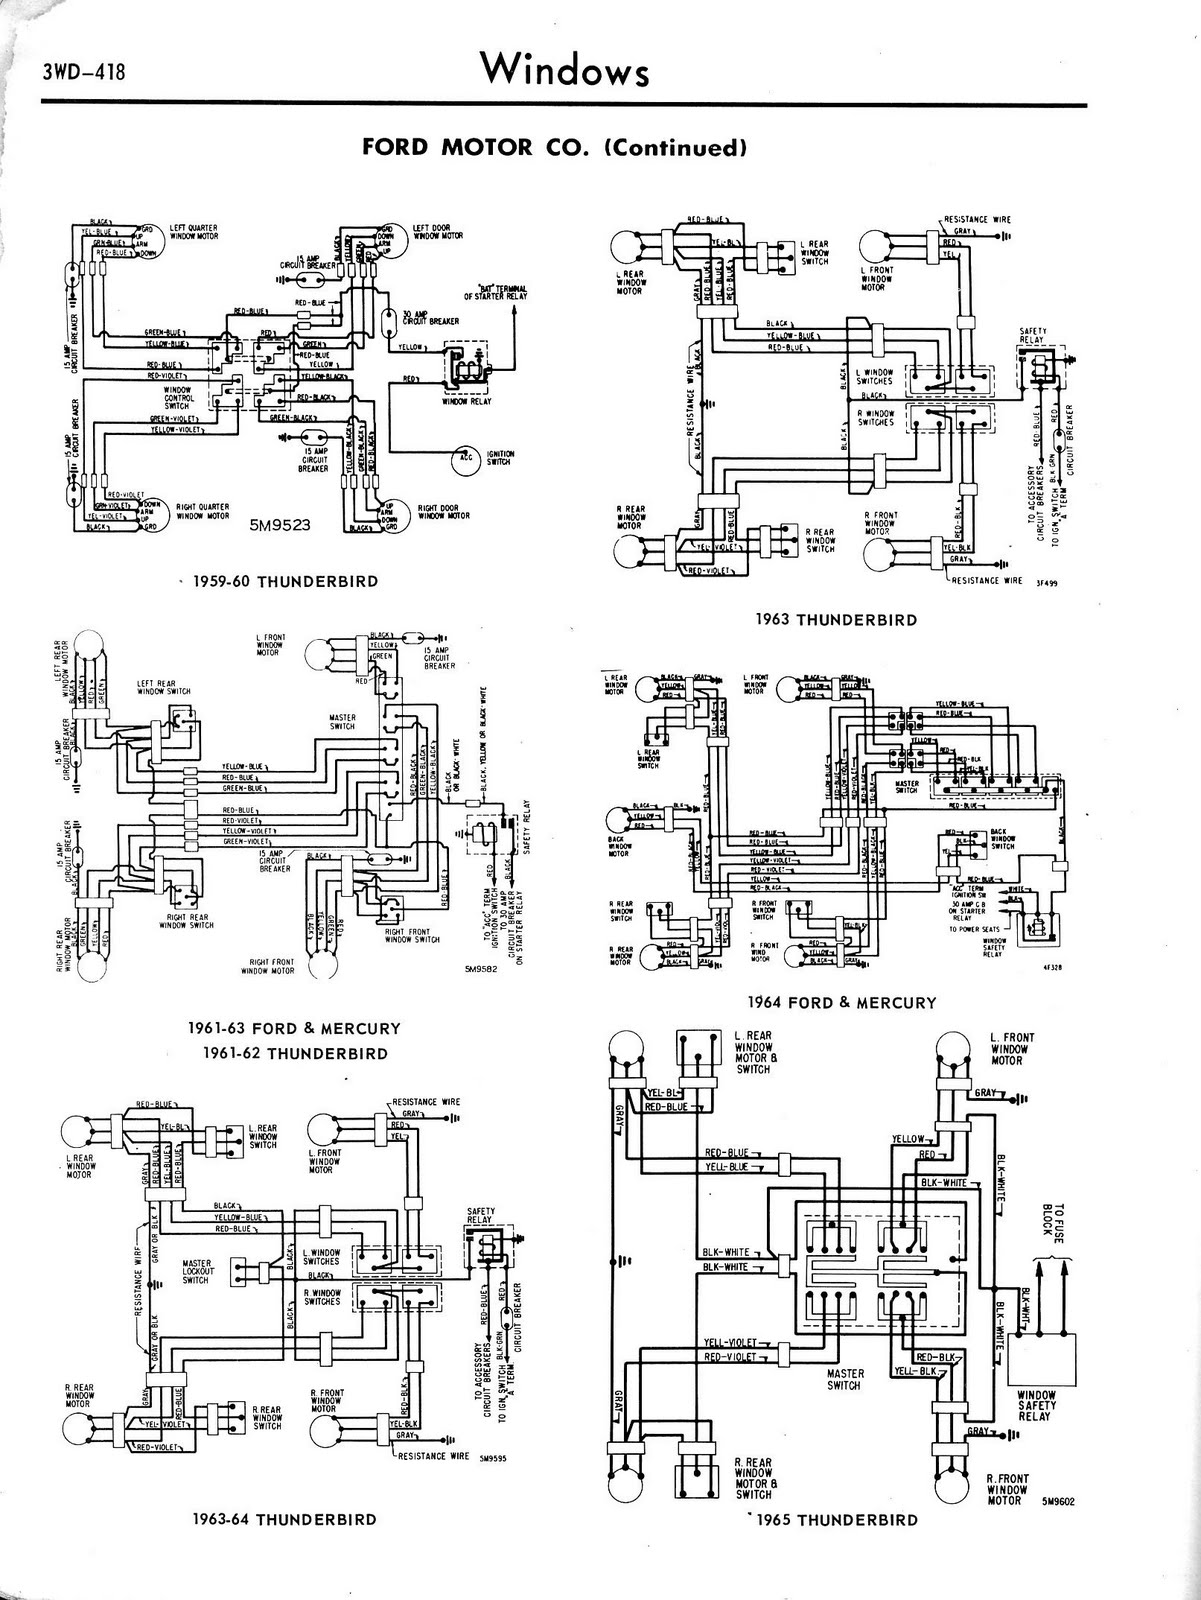 1965+Ford+Thunderbird+Window+Controls+Diagram 1964 thunderbird wiring diagram 1964 thunderbird stereo wiring 1964 ford f100 wiring diagram at crackthecode.co